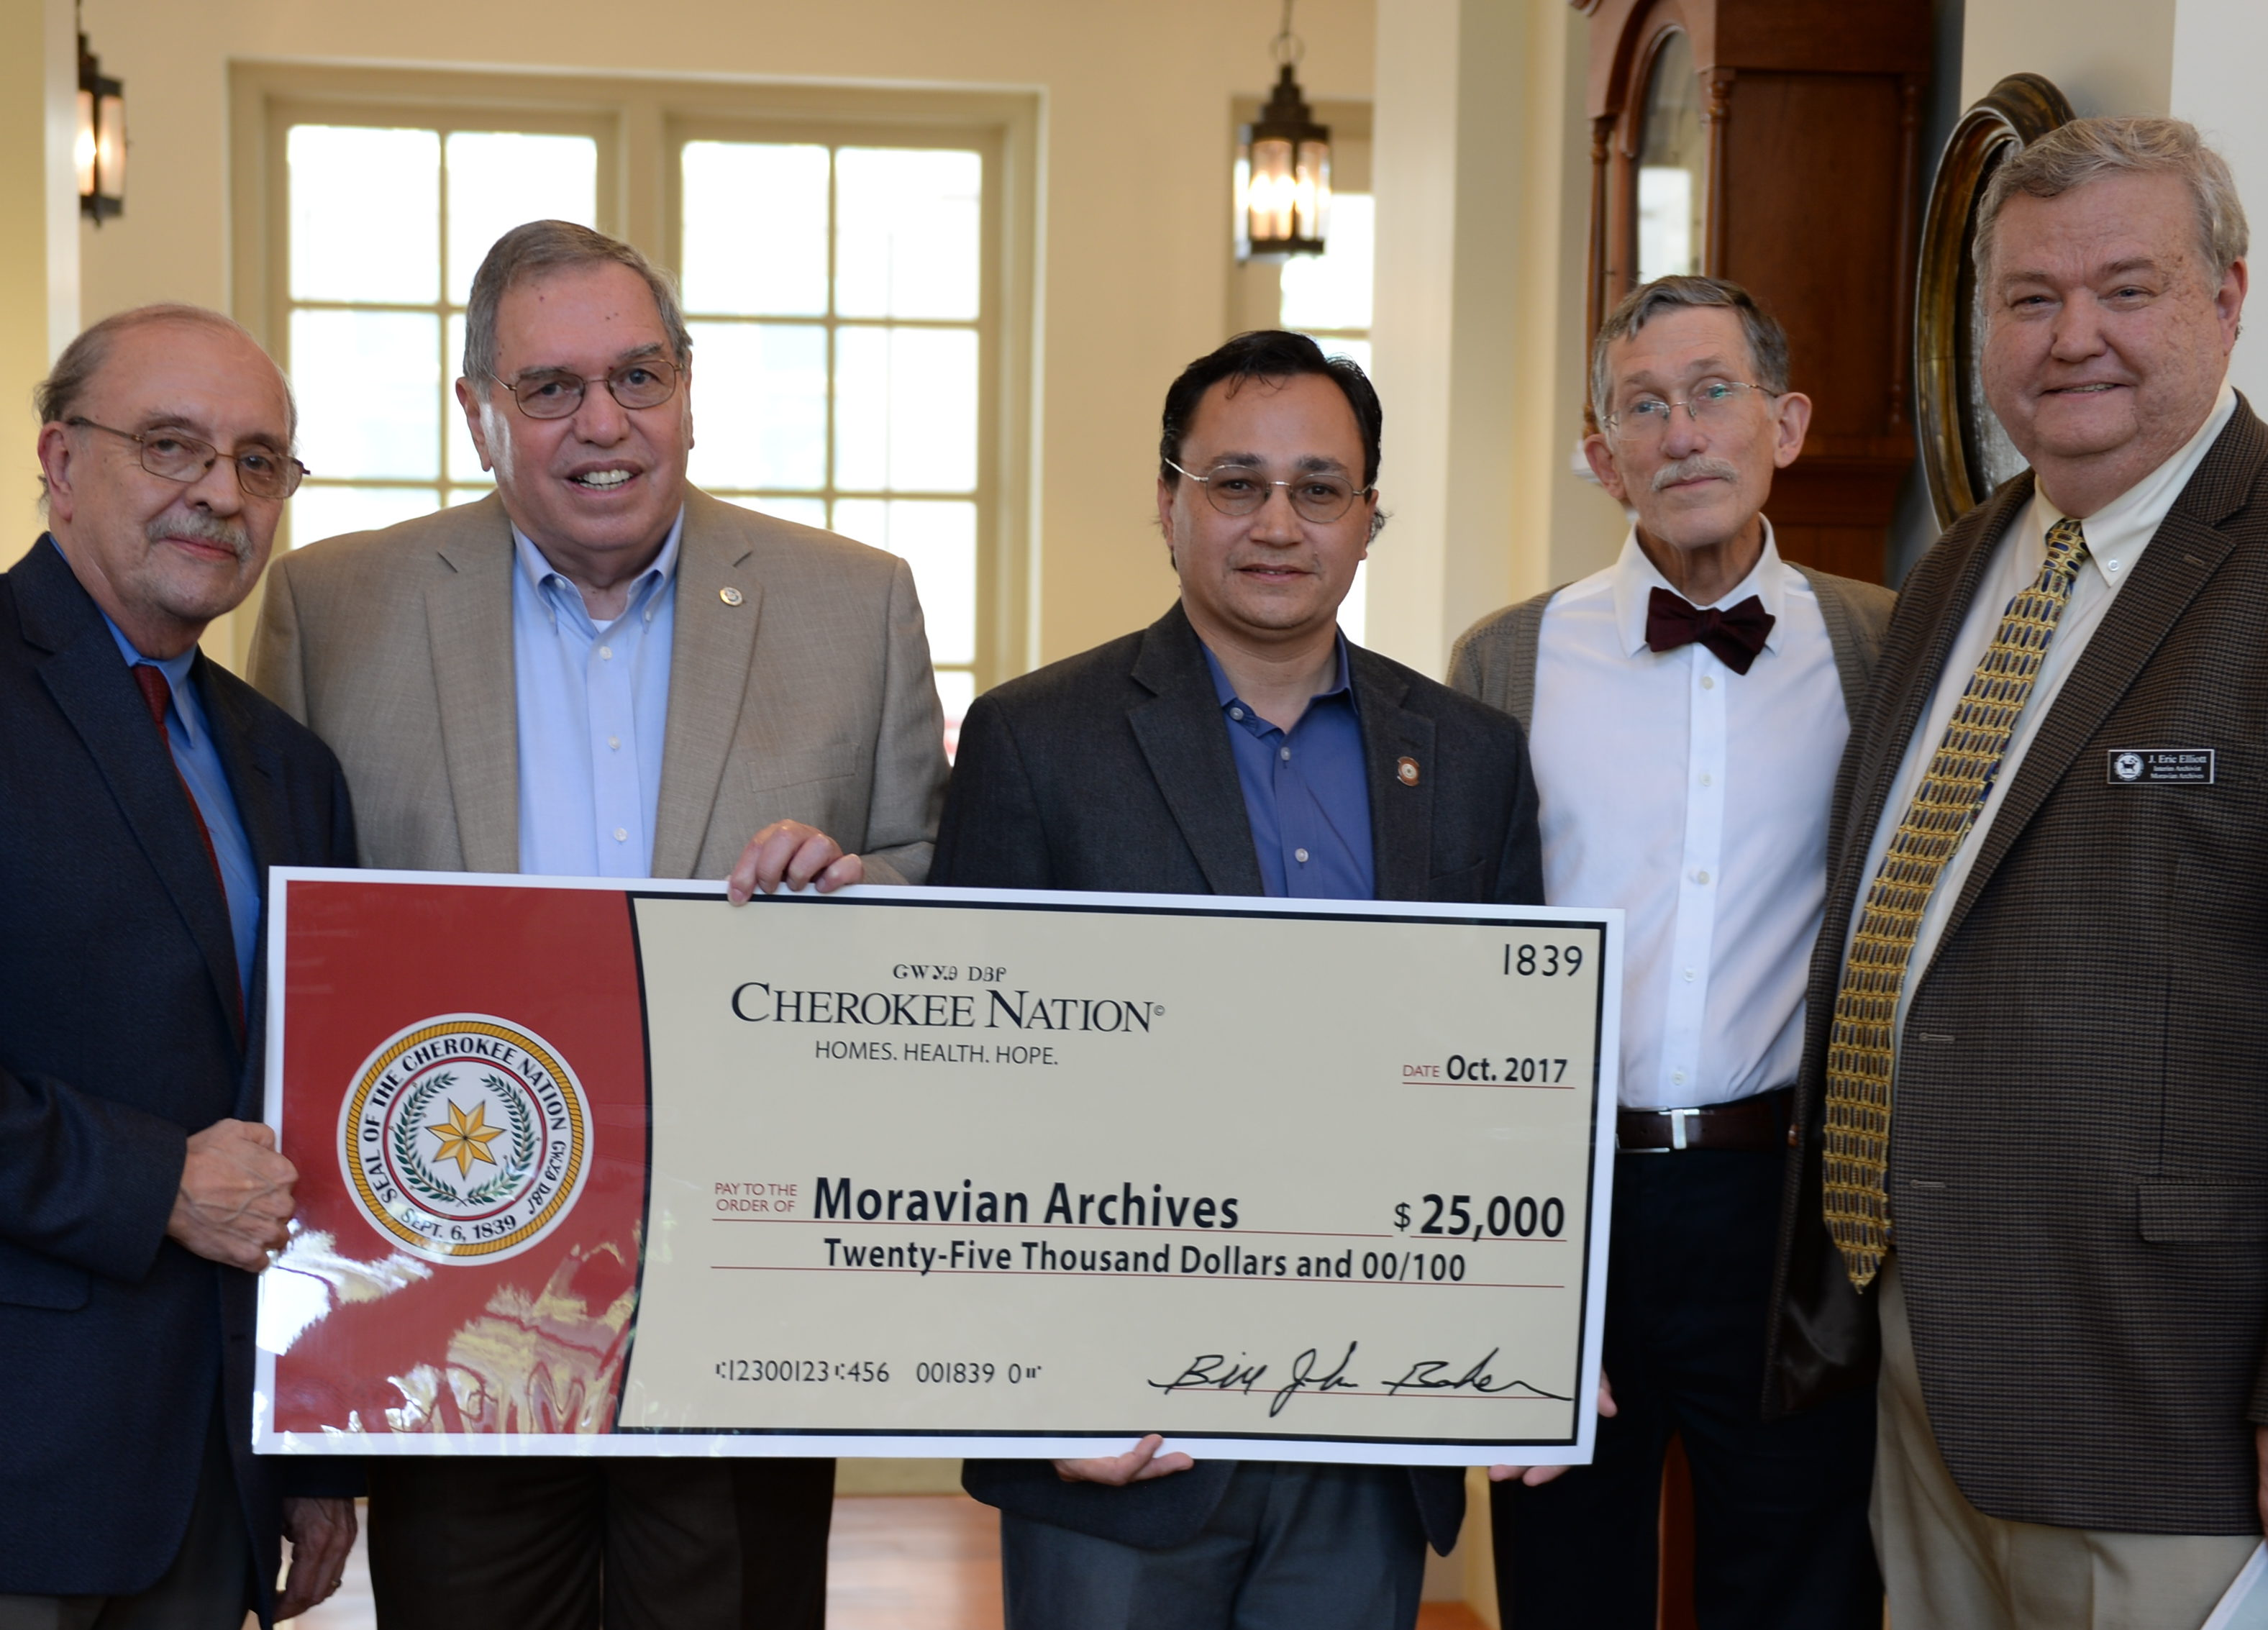 October 11 Visit by Cherokee Nation leaders to the Archives